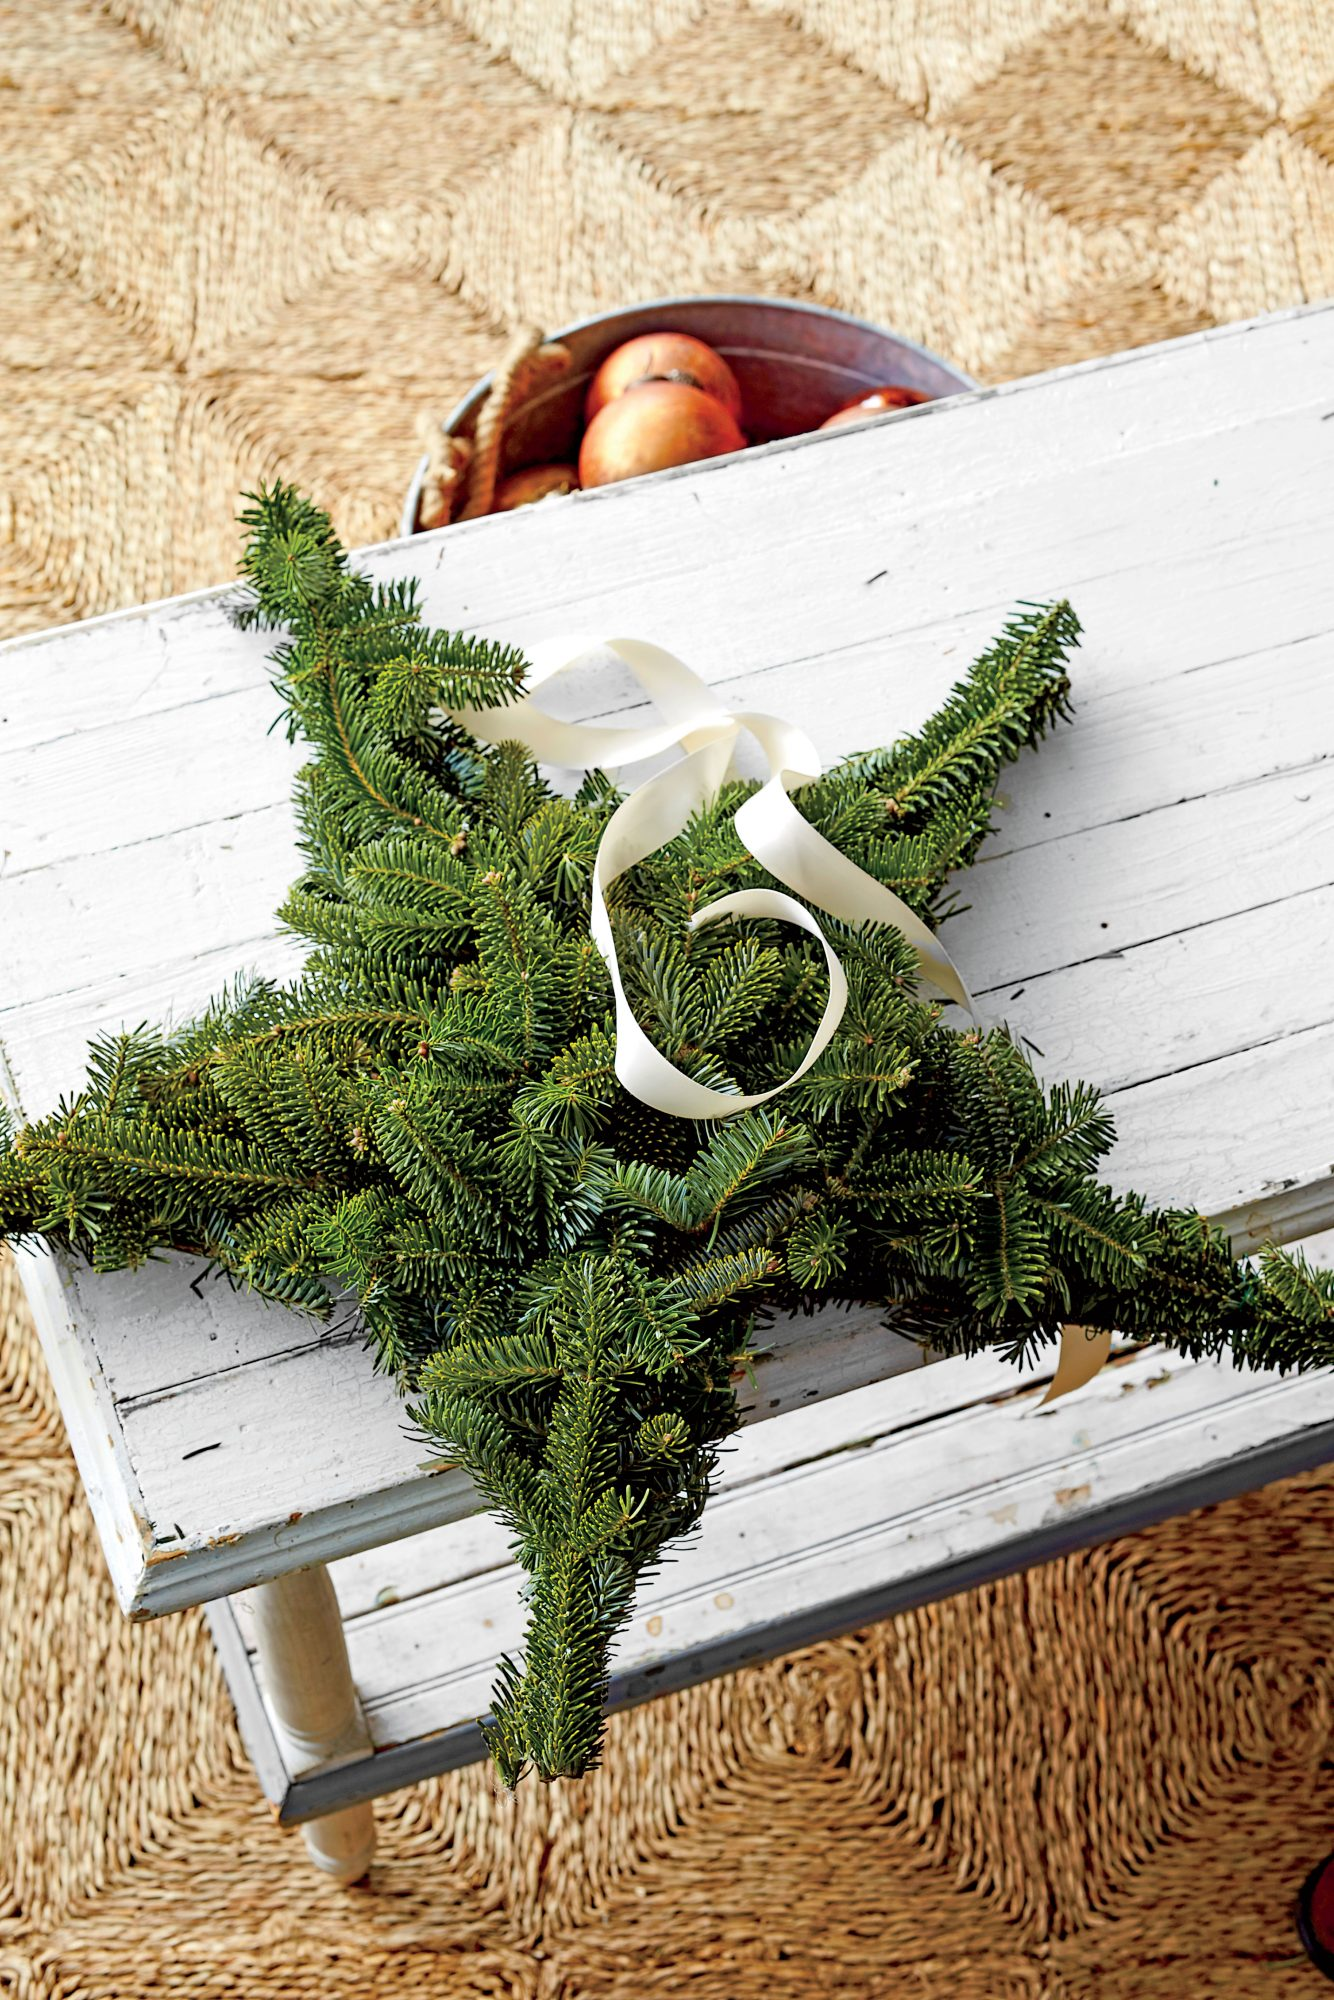 Hang a Star Wreath